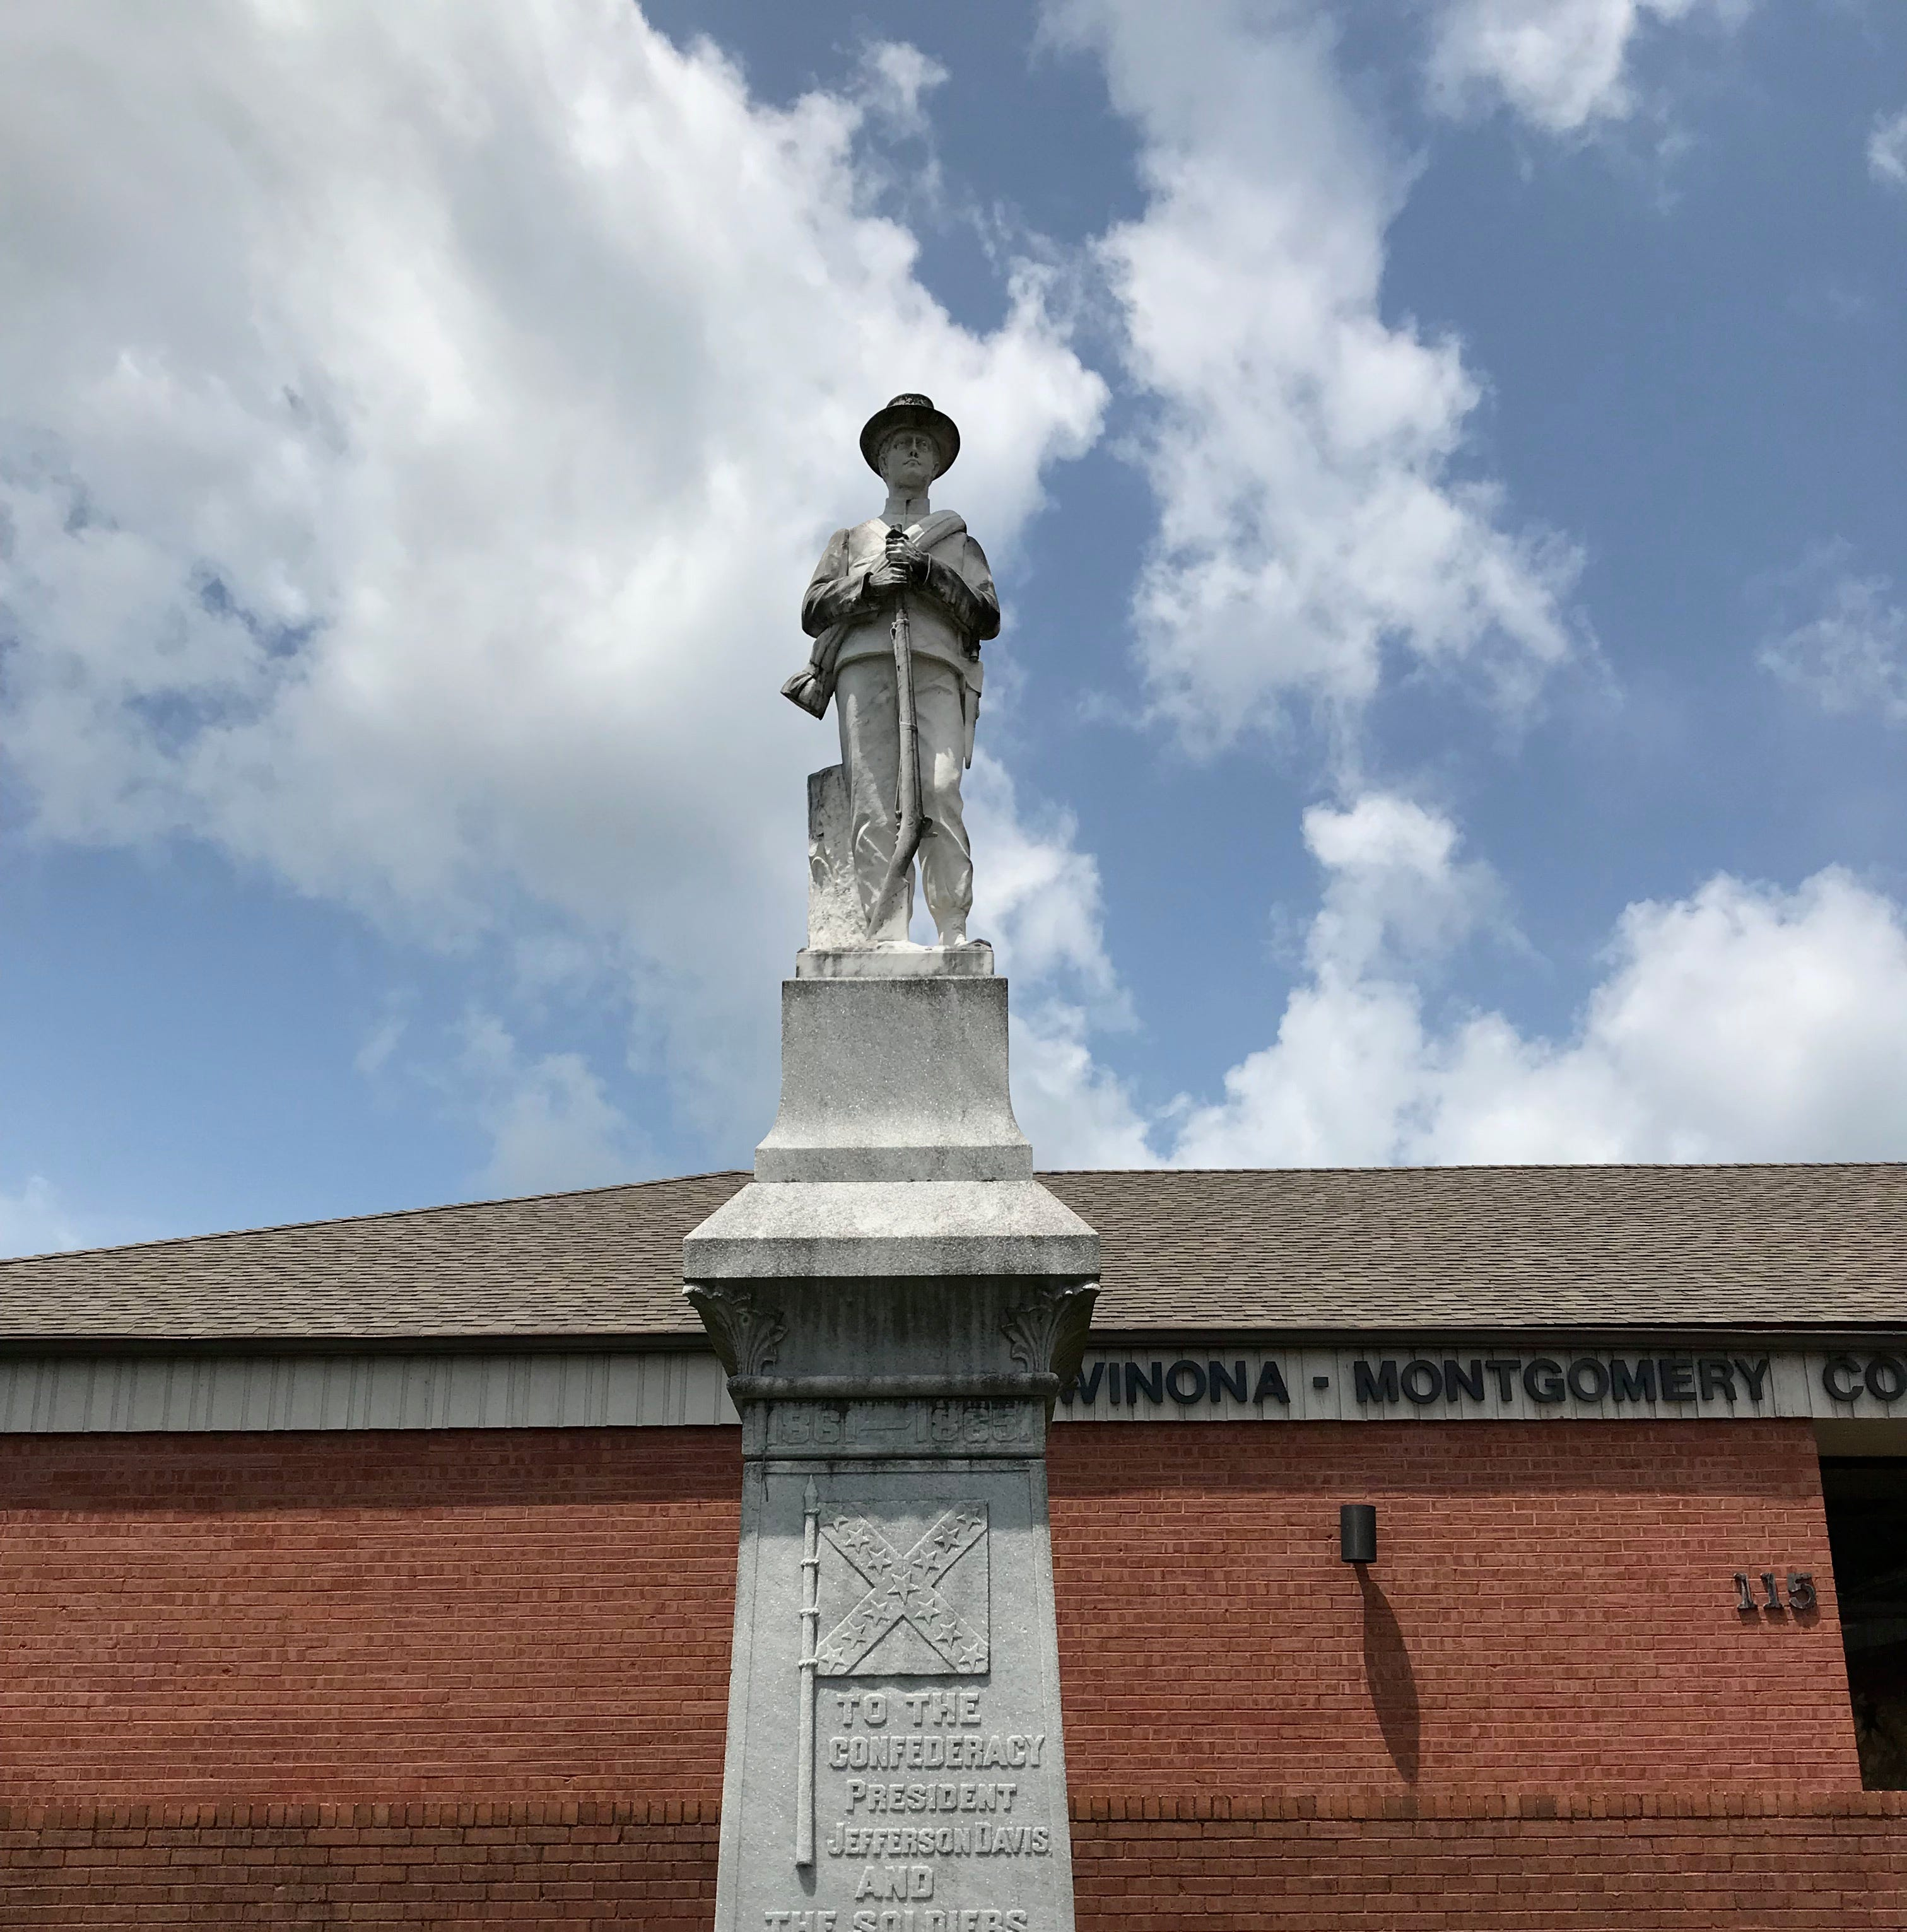 Confederate monuments: Ole Miss is teaching the South a valuable lesson on history